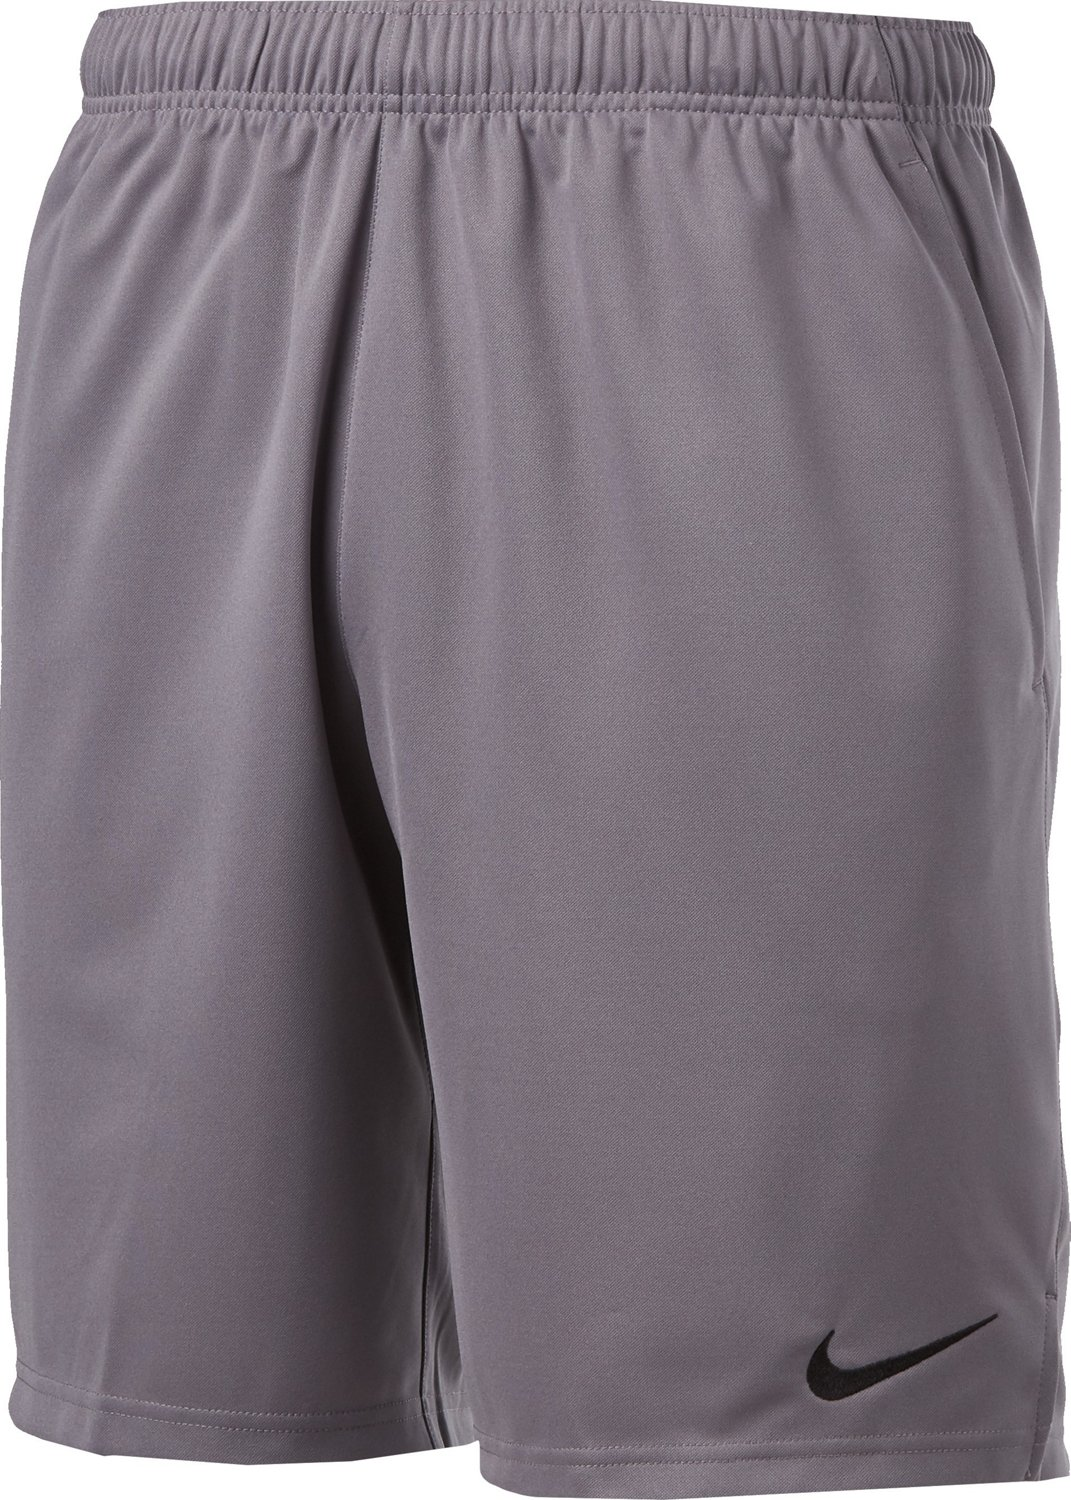 8f72a608d7 Display product reviews for Nike Men's Epic Dry Training Short